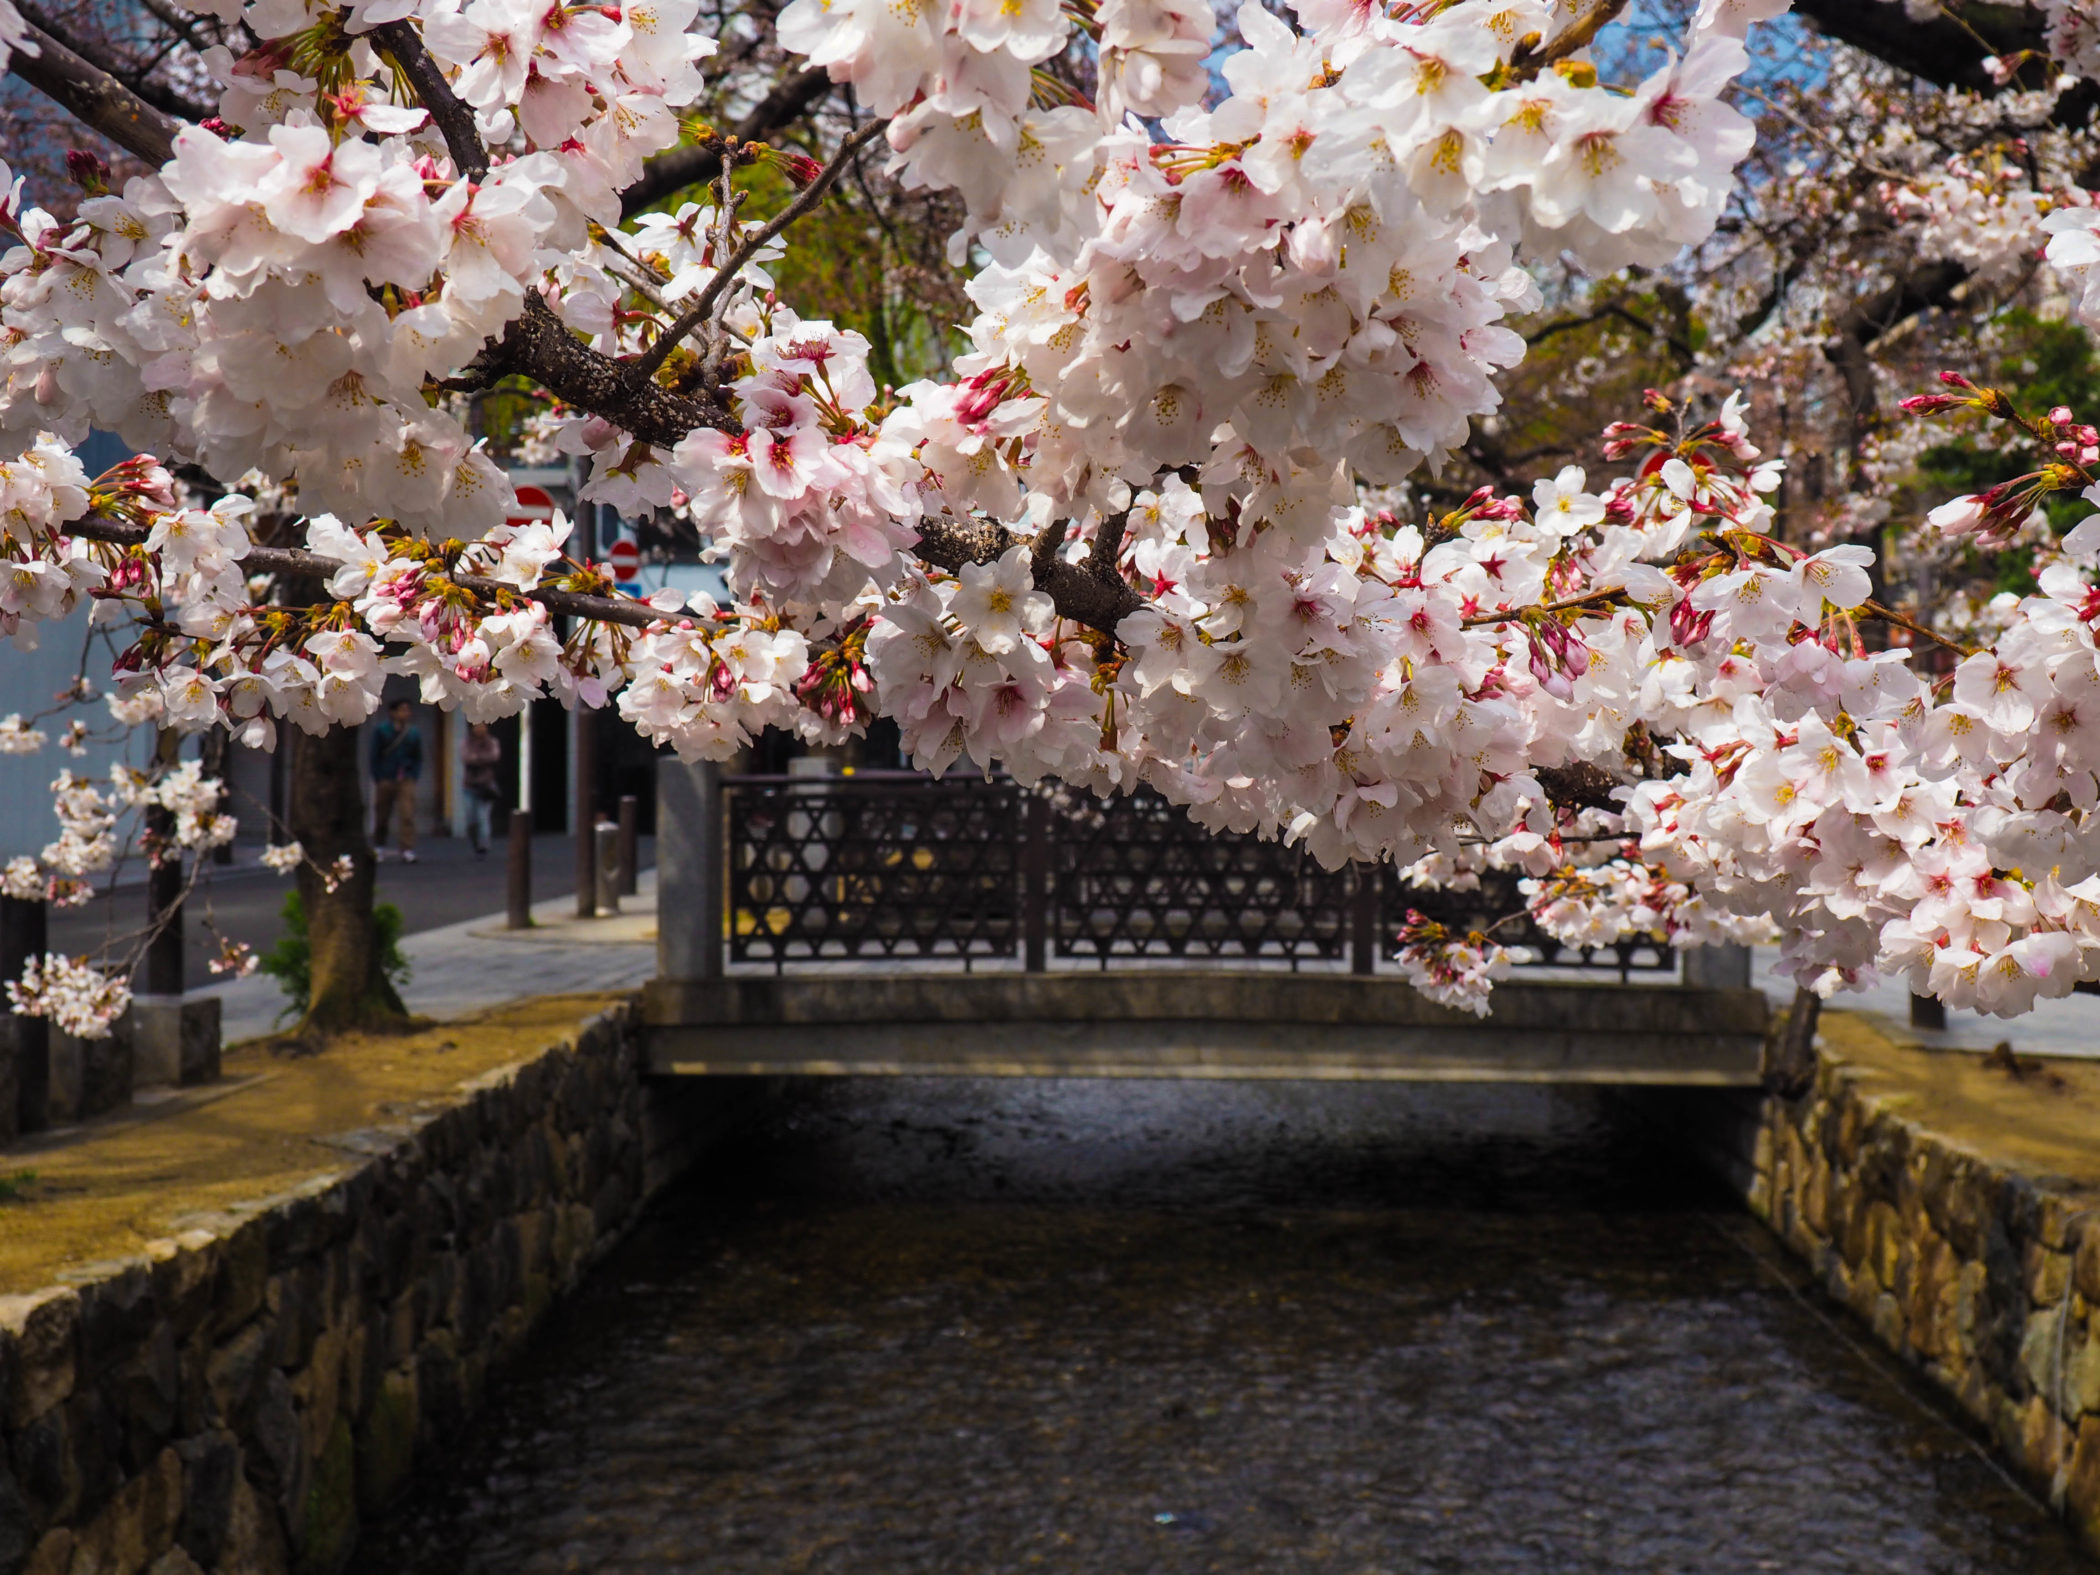 Japan-Kyoto-City-Kirschblüten